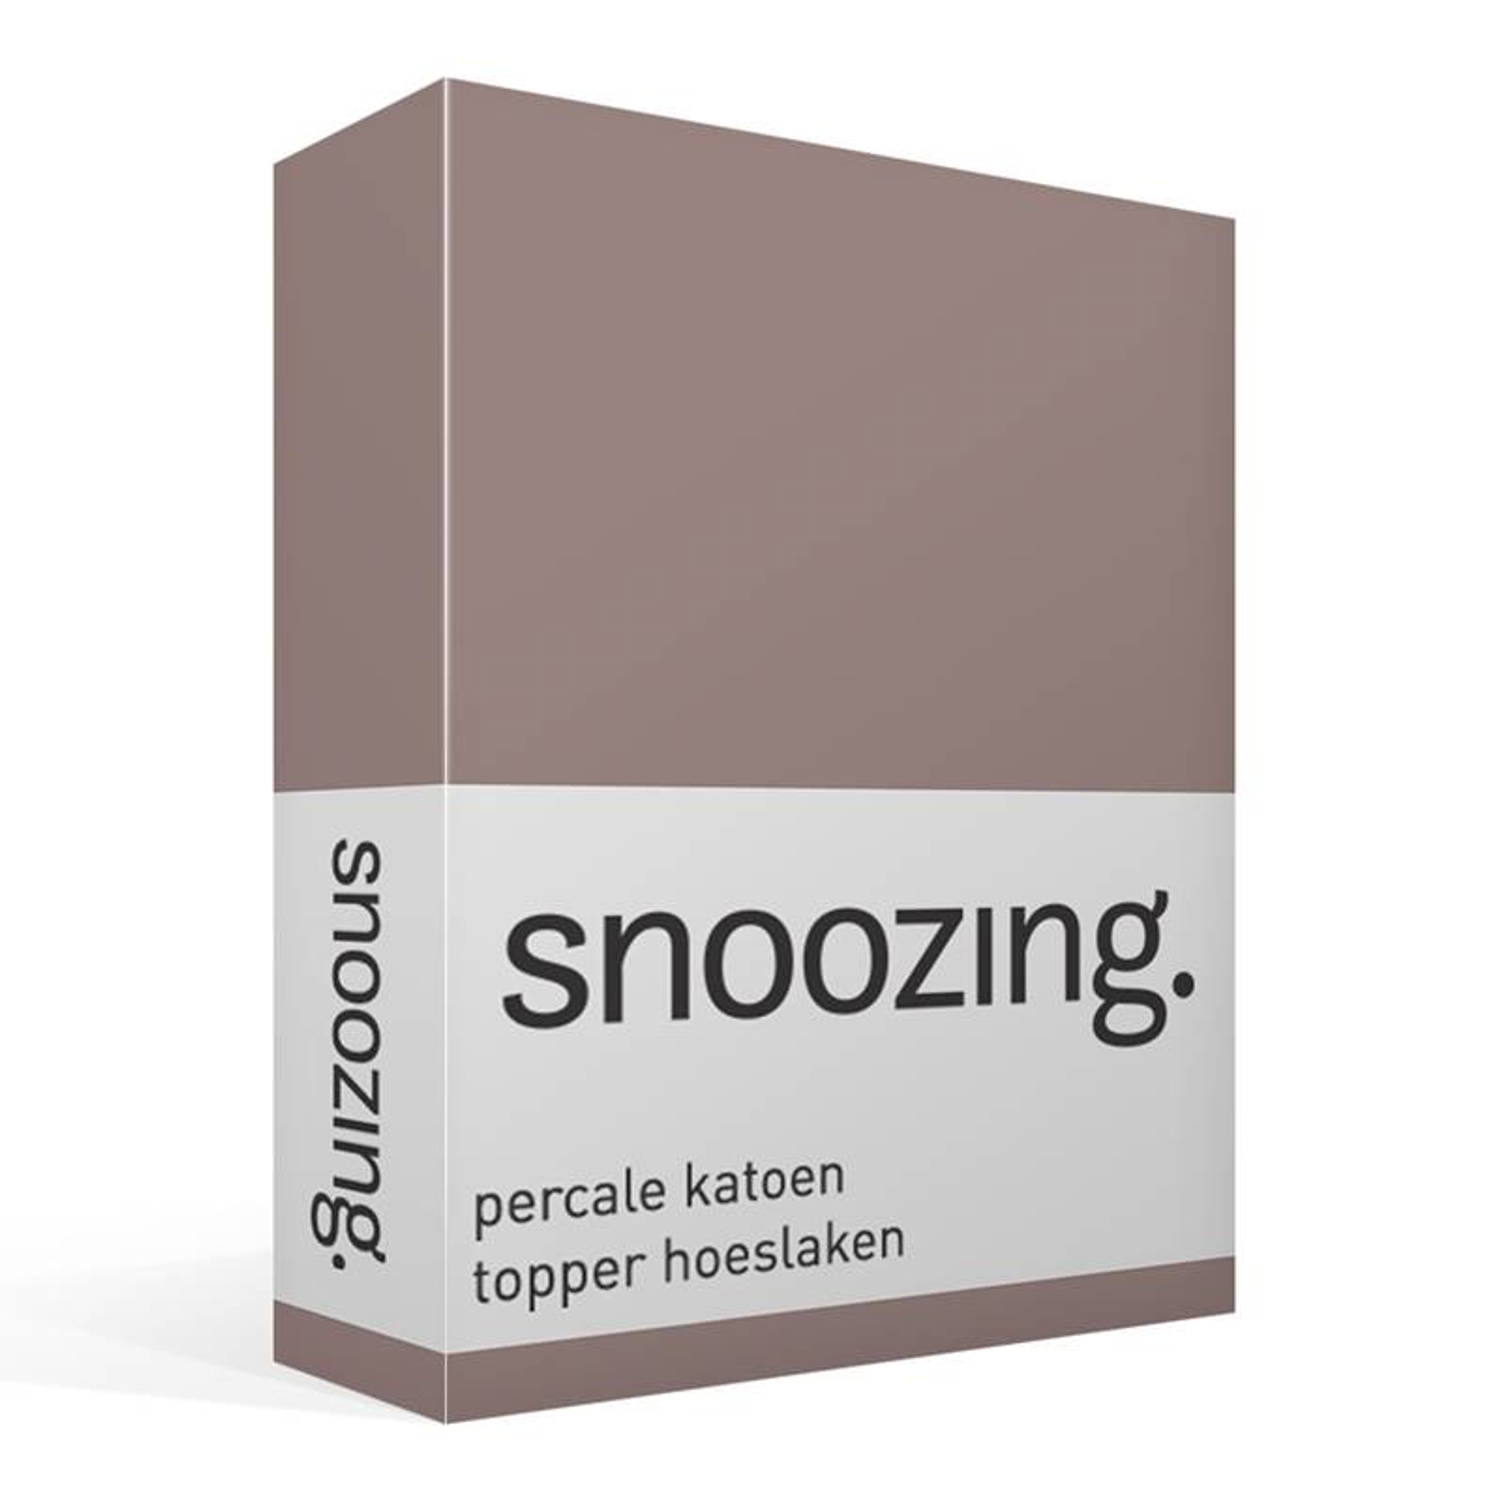 Snoozing percale katoen topper hoeslaken - 100% percale katoen - 1-persoons (90x200 cm) - Taupe